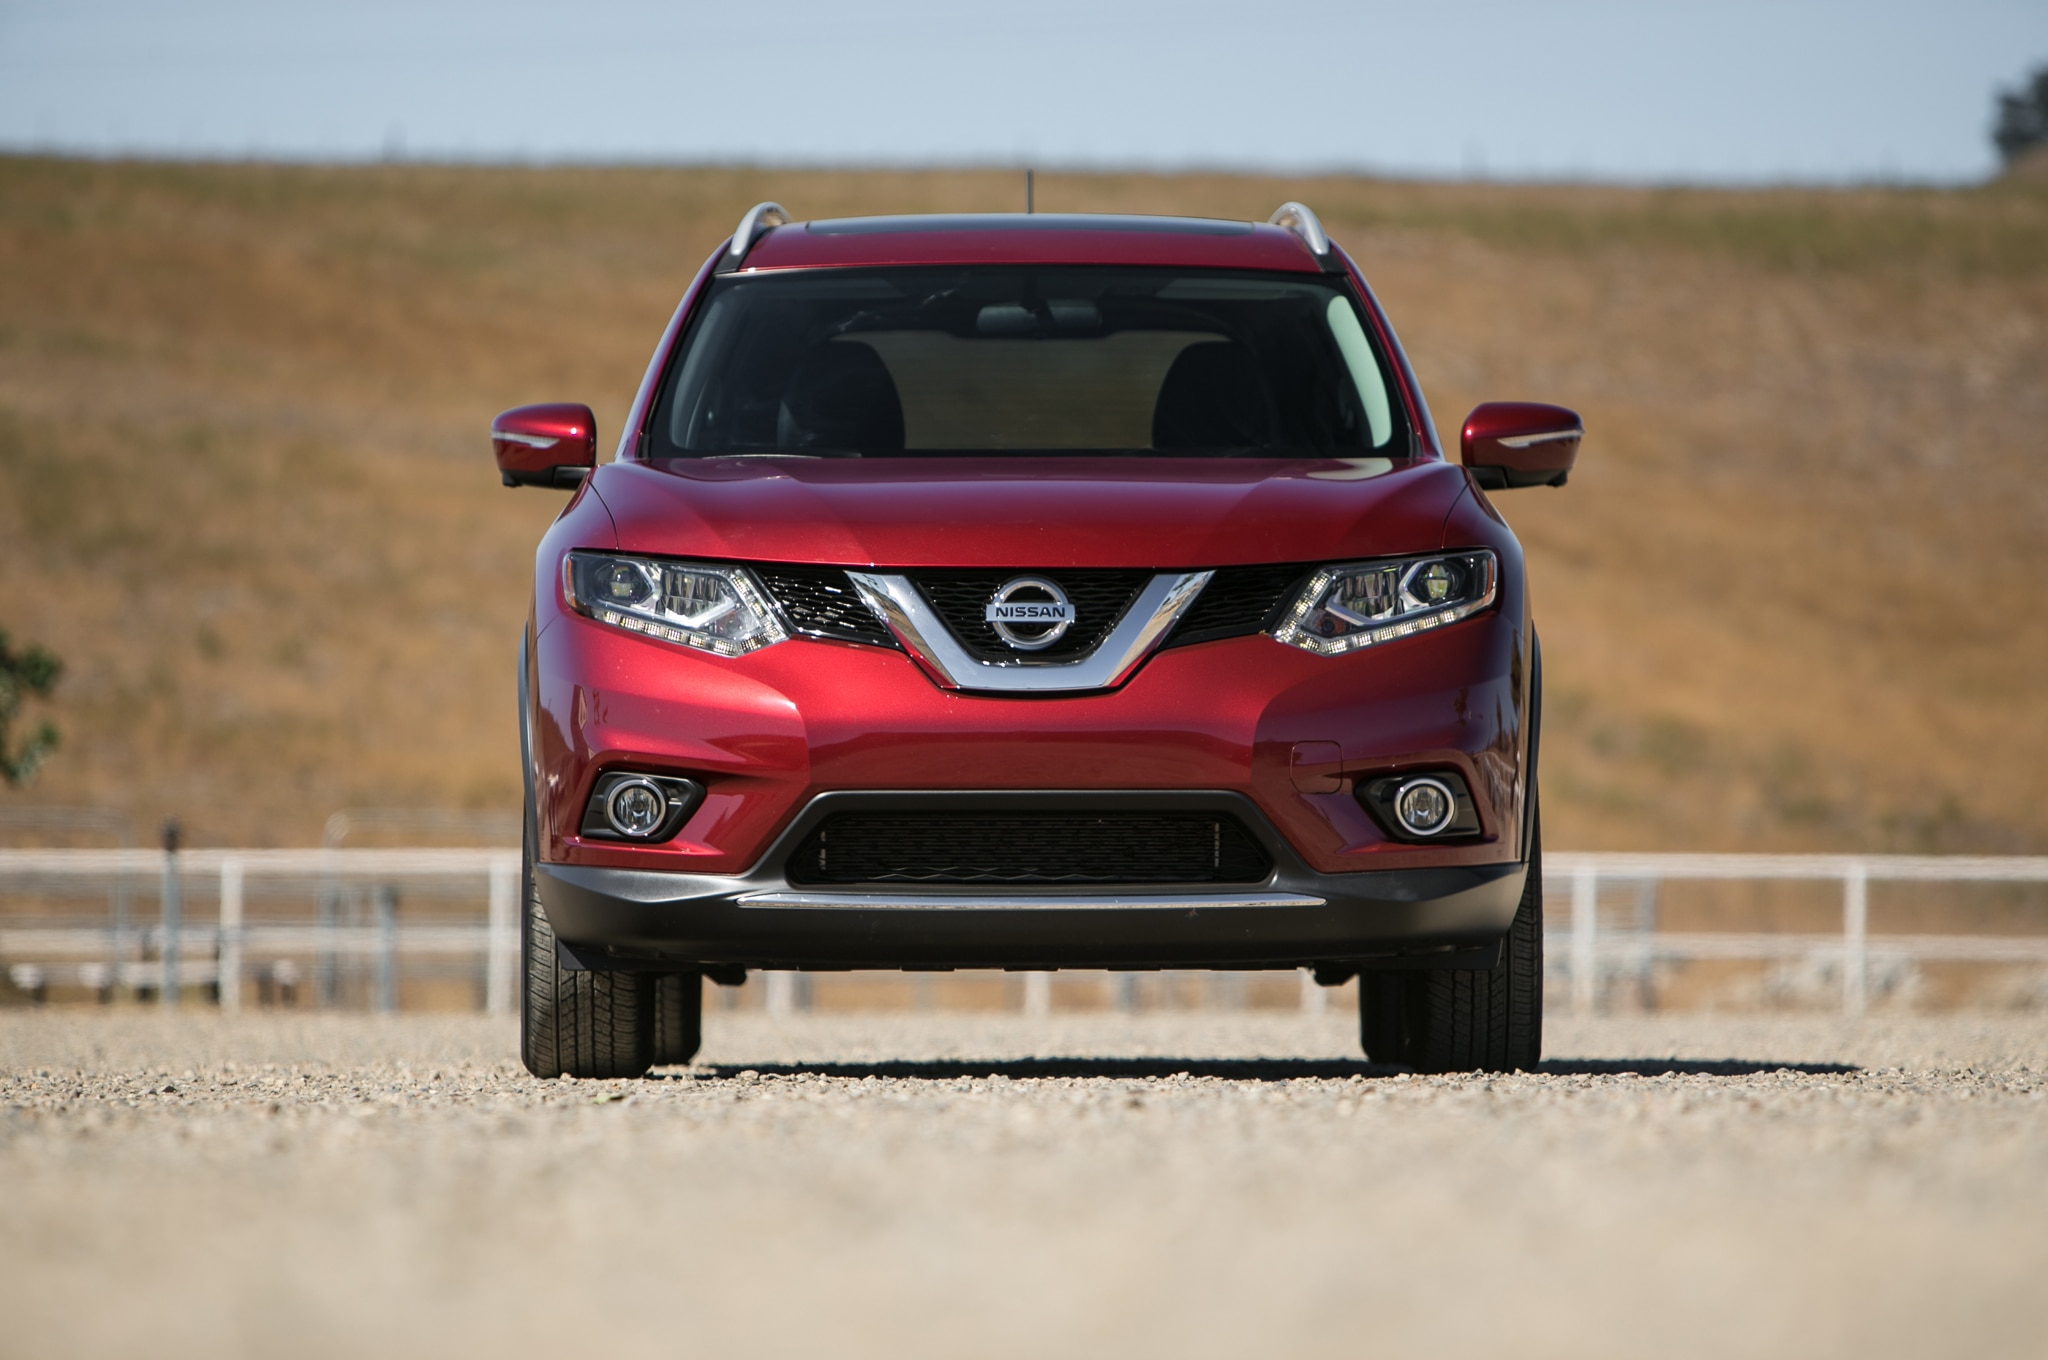 2014 Nissan Rogue First Drive - Automobile Magazine